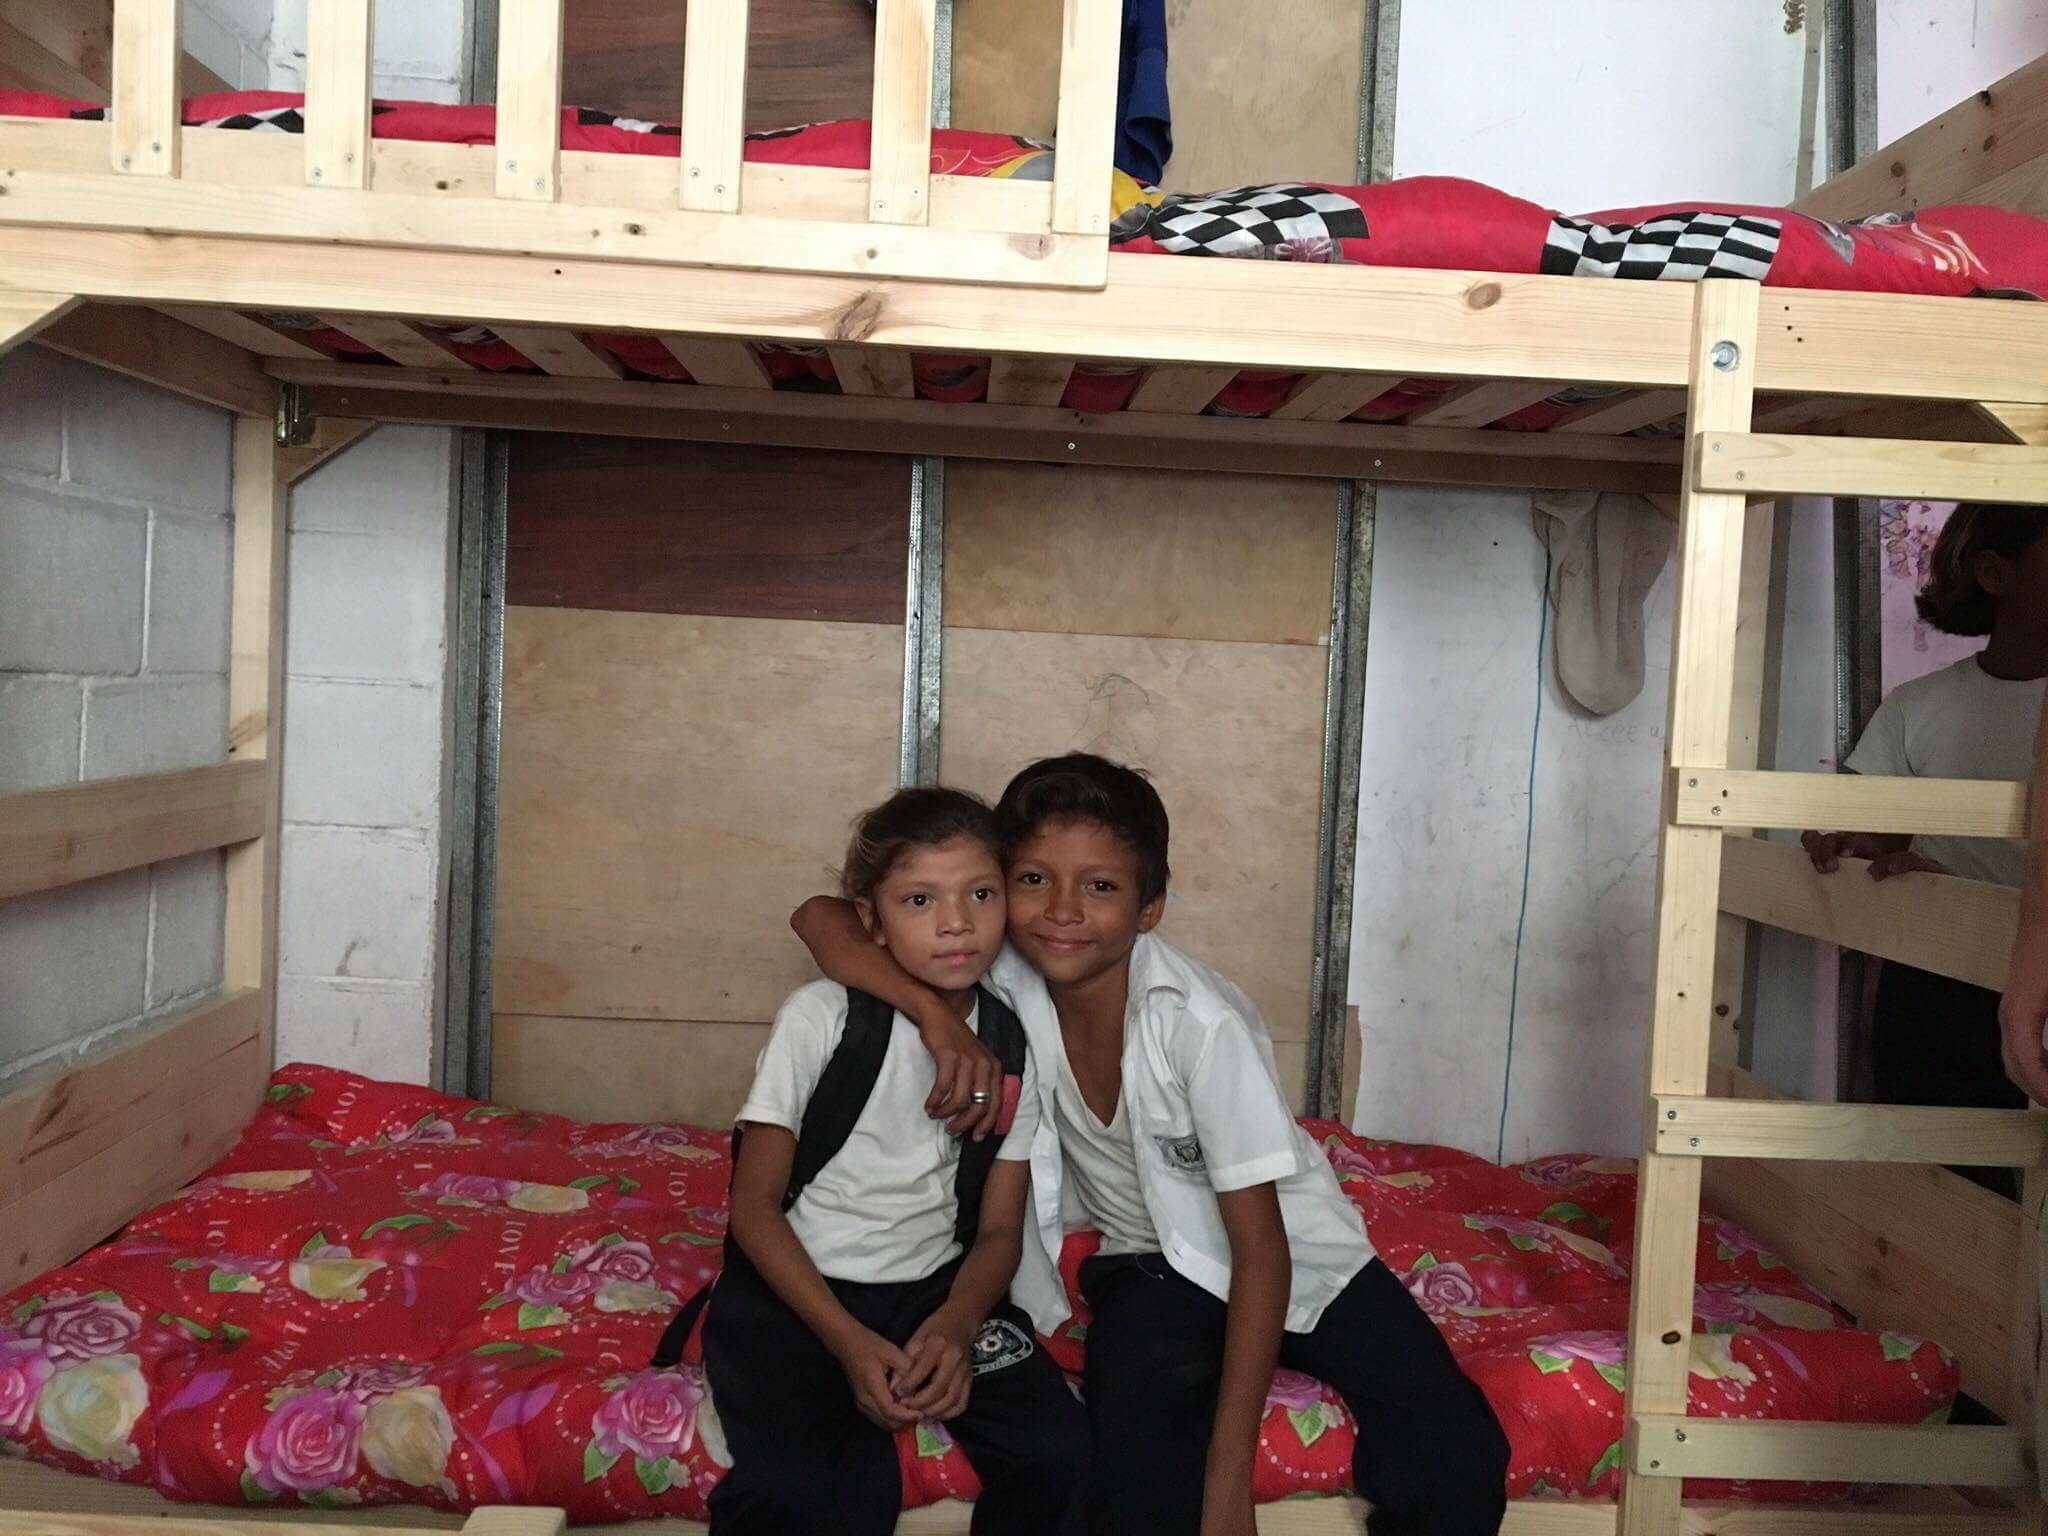 Roberto and Aracellys are surprised to come home from school in a renovated bedroom.